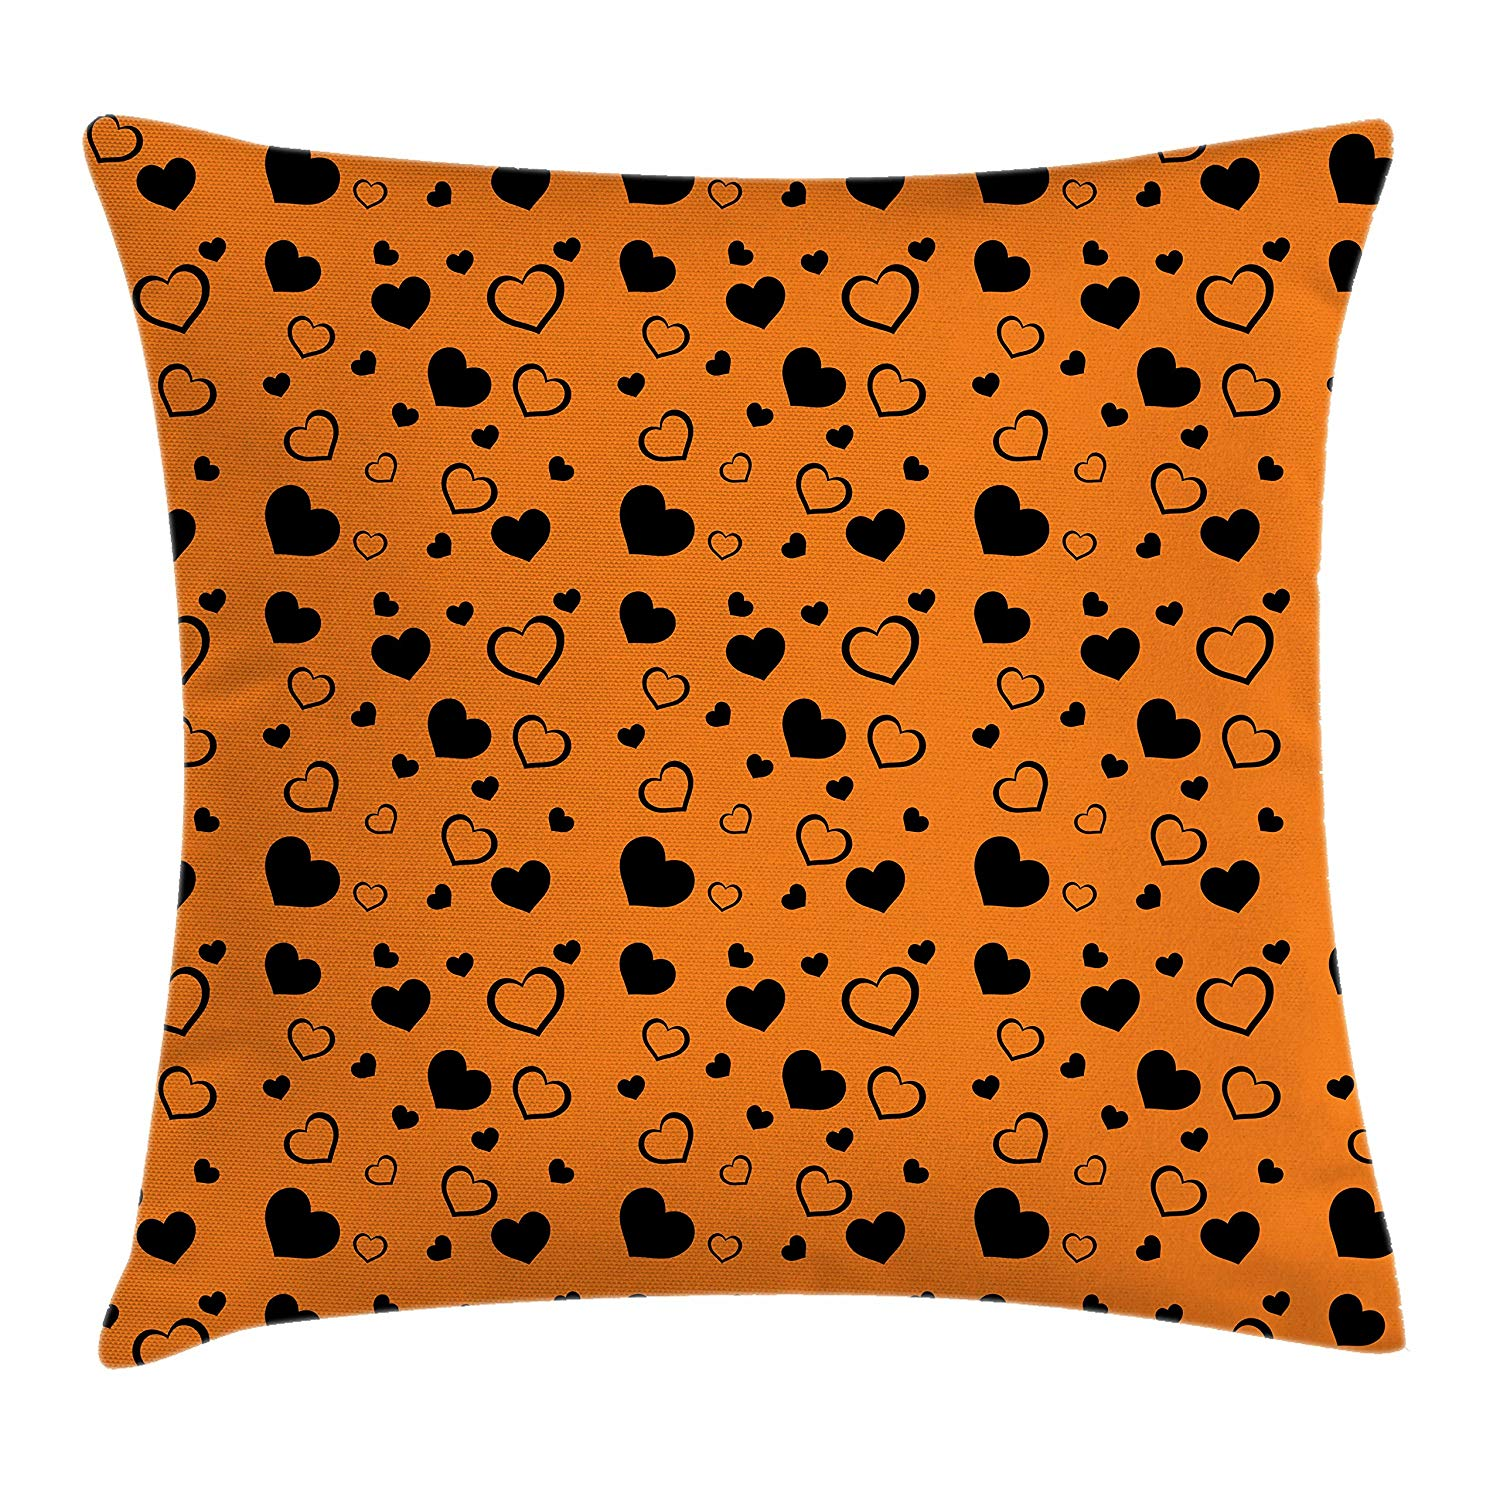 Hearts Throw Pillow Cushion Cover by Lunarable, Vibrant Color Background with Monochrome Hearts with Various Sizes Romance Design, Decorative Square Accent Pillow Case, 26 X 26 Inches, Orange Black